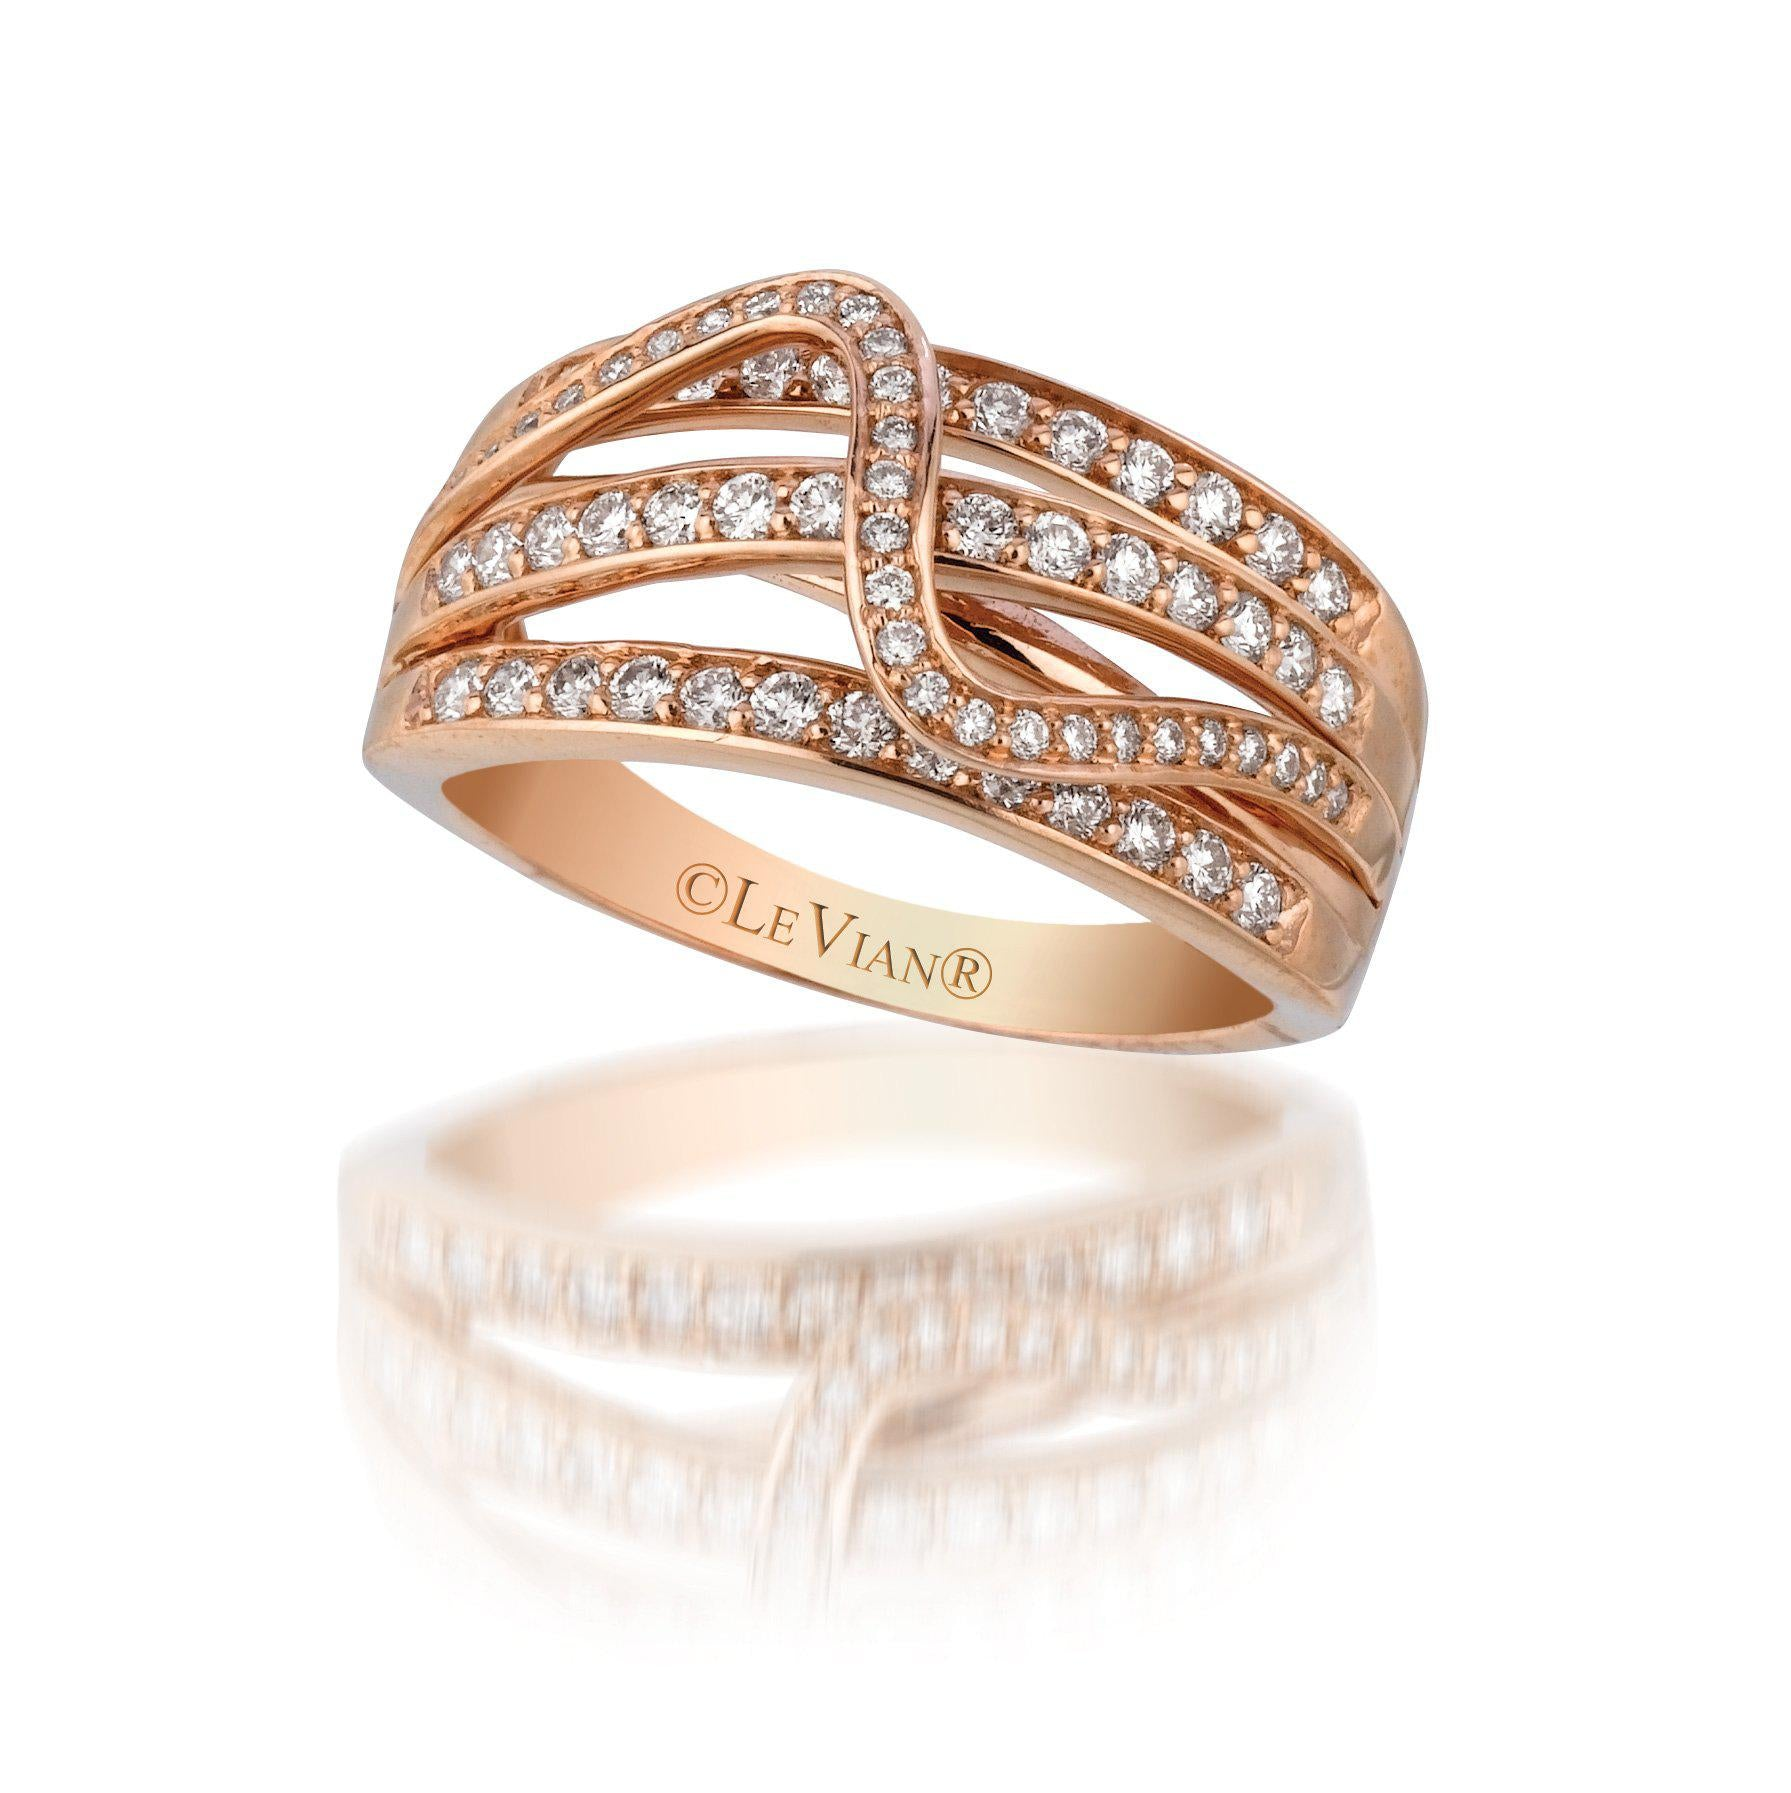 Strawberry Gold Criss Cross Ring with Nude Diamonds